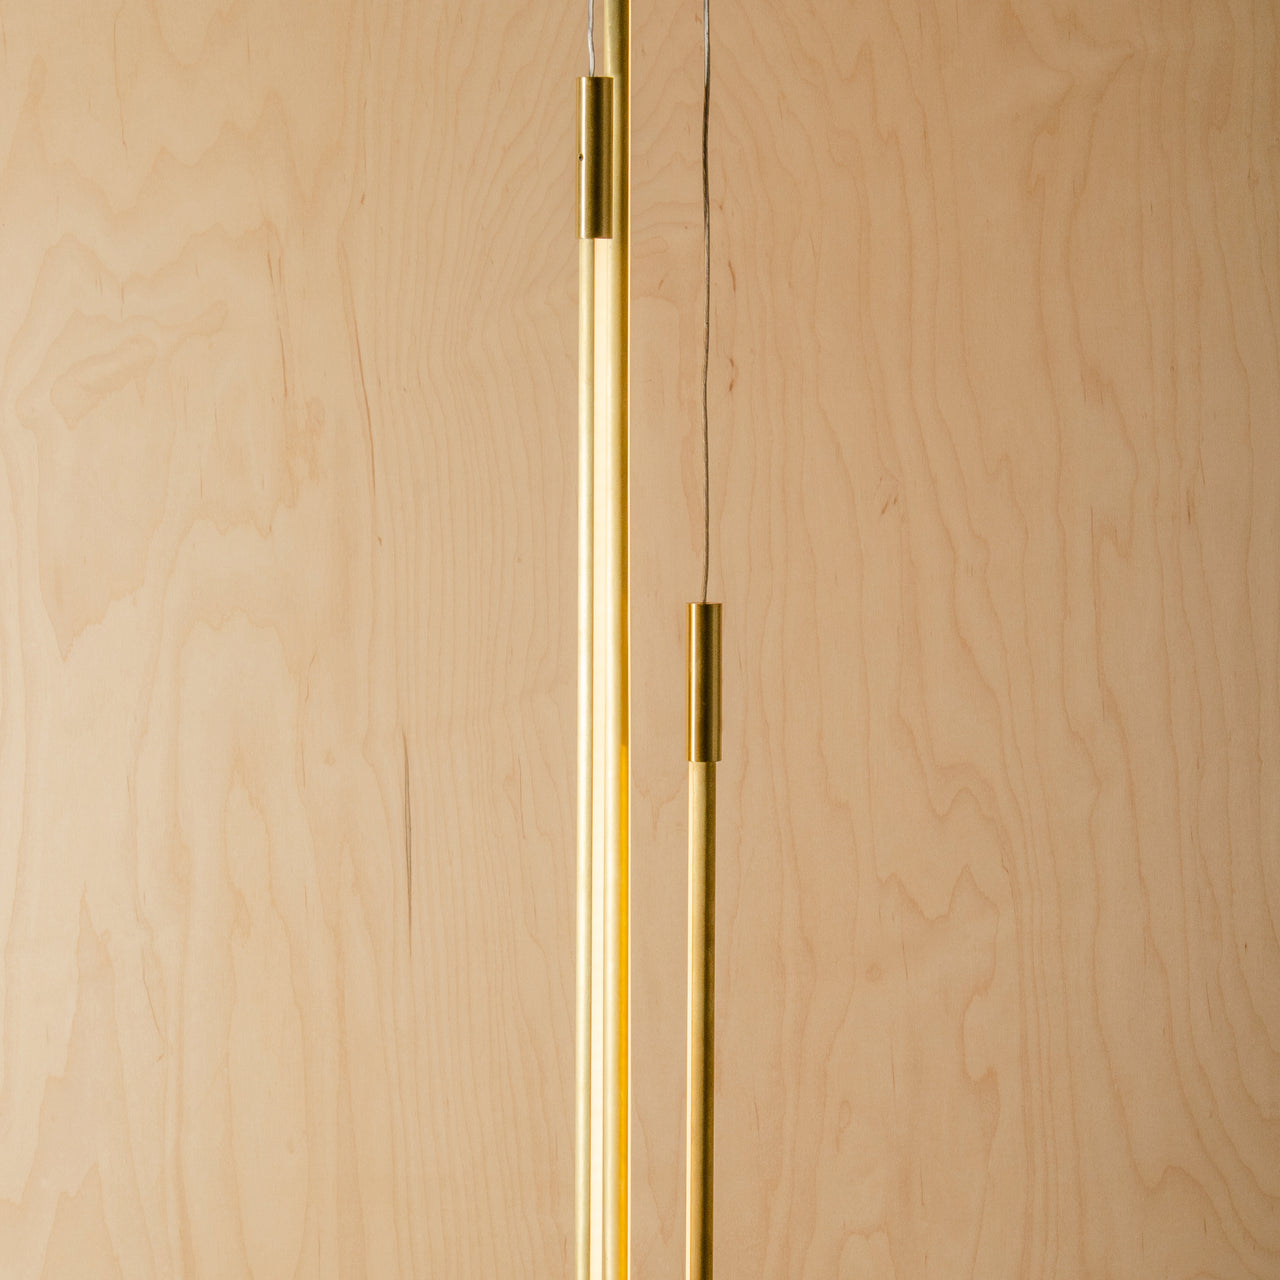 Thin Vertical Suspension Light